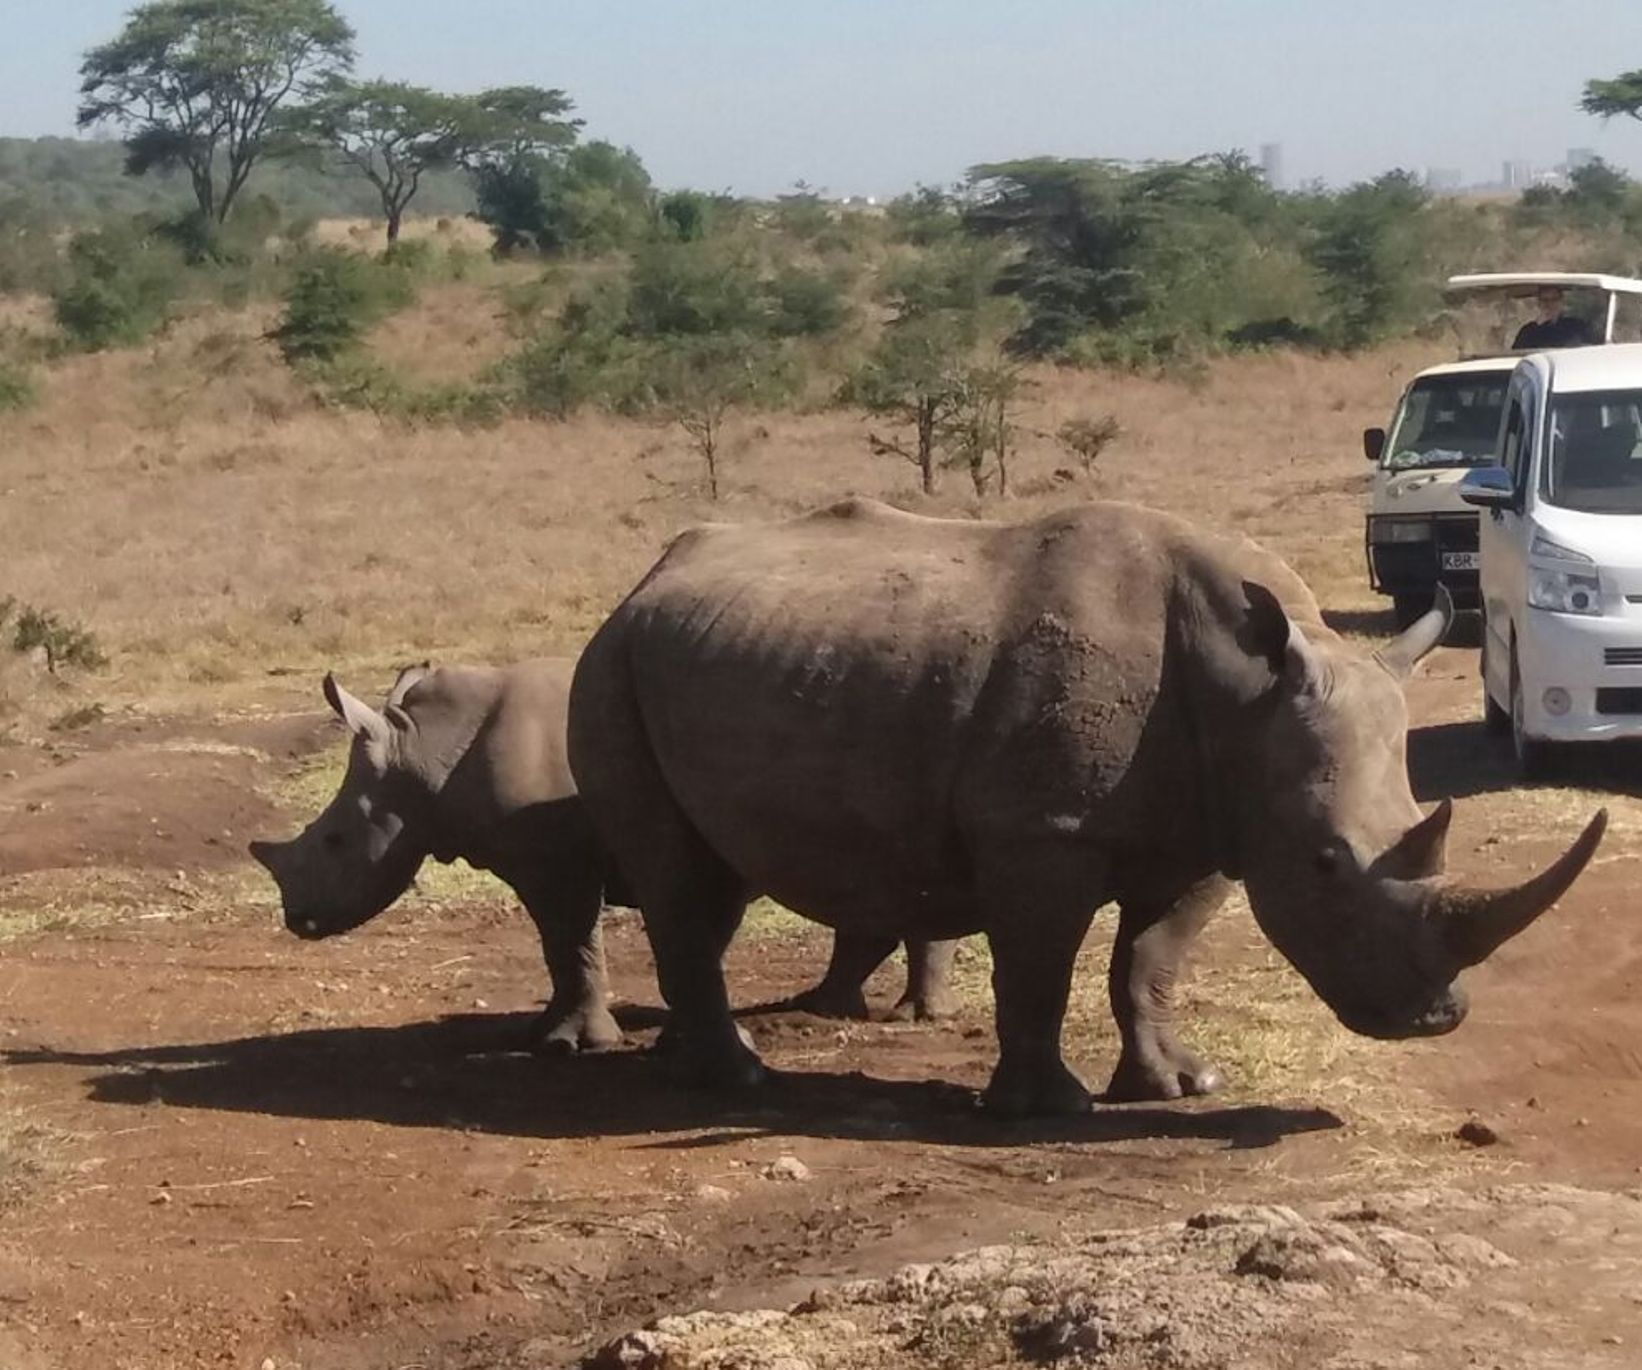 Black rhino in Nairobi National Park Tour - Nairobi